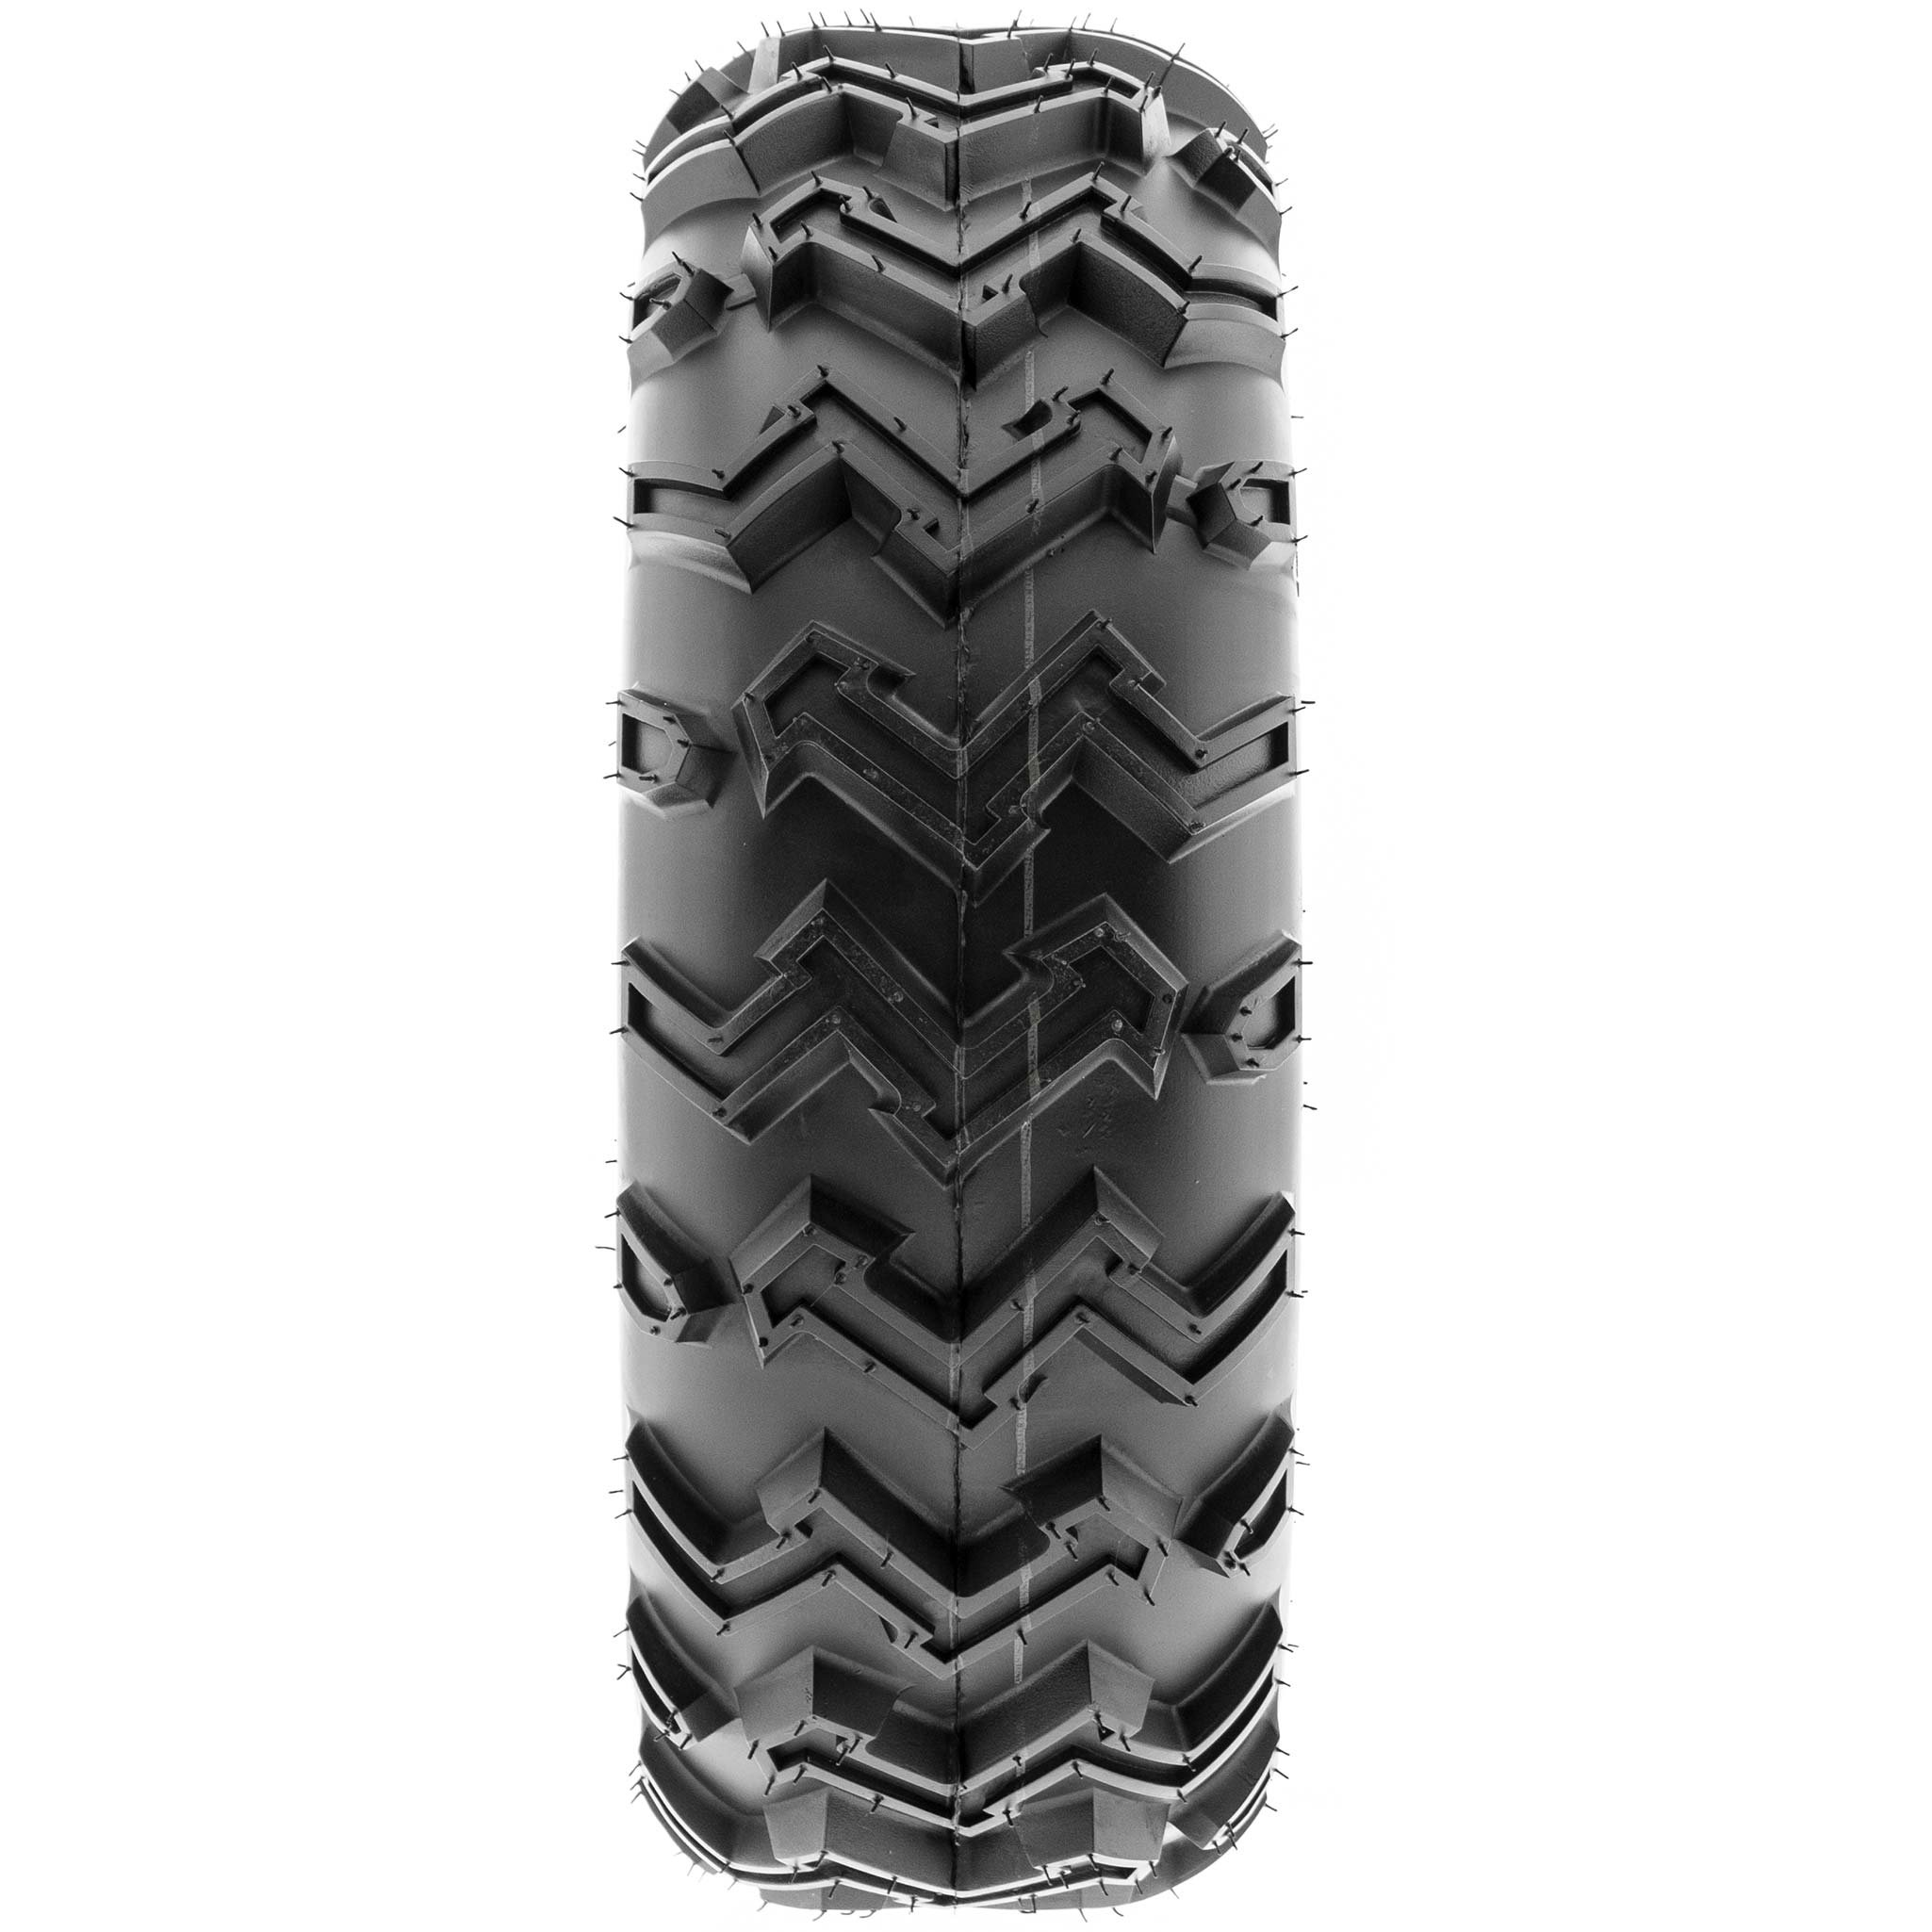 SunF 21x7-10 21x7x10 ATV UTV All Terrain Race Replacement 6 PR Tubeless Tires A001, [Set of 2] by SunF (Image #7)